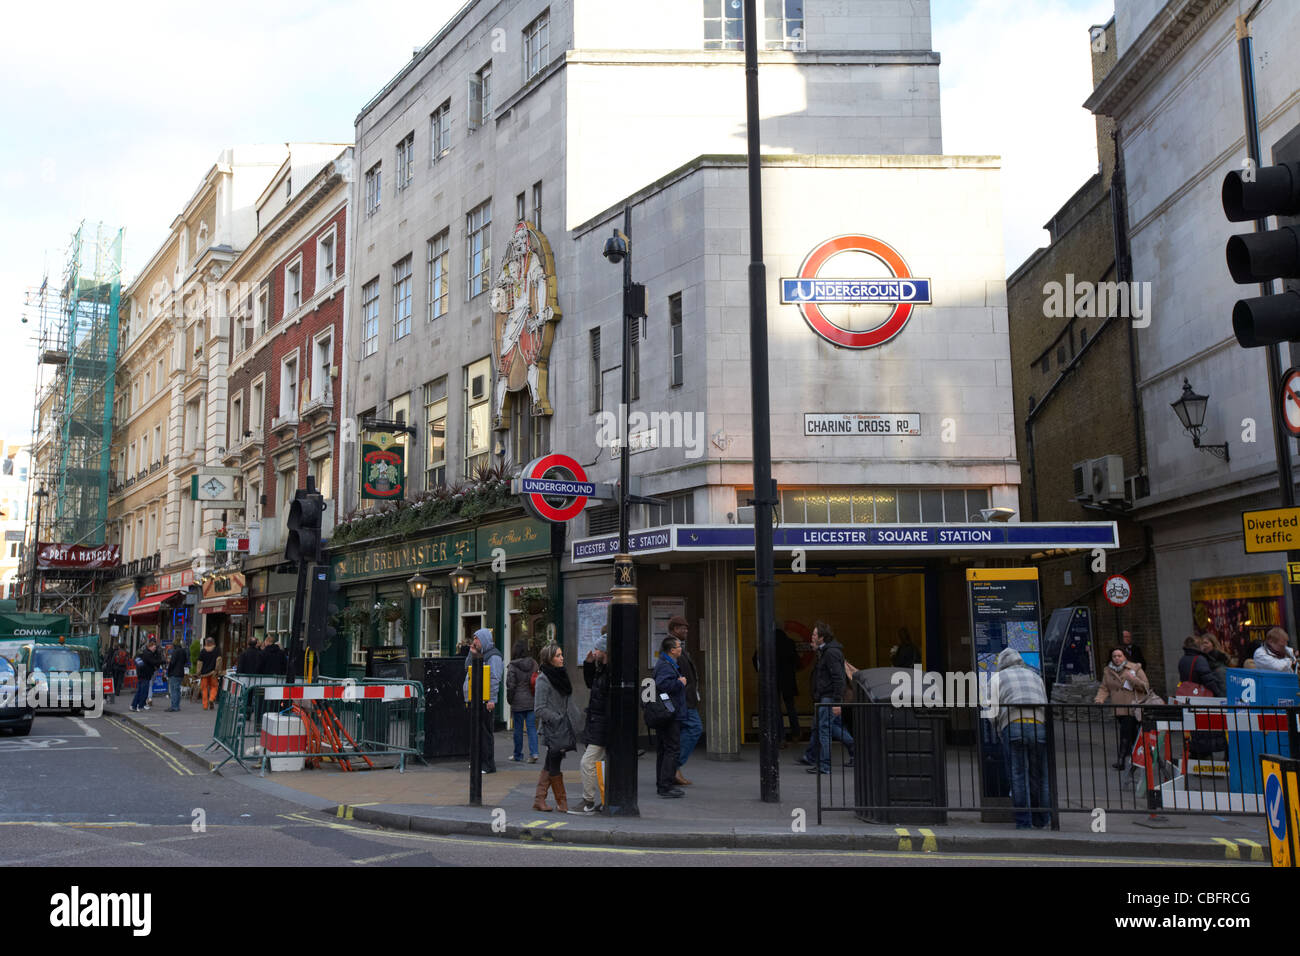 leicester square underground station on charing cross road in theatreland west end london england uk united kingdom - Stock Image